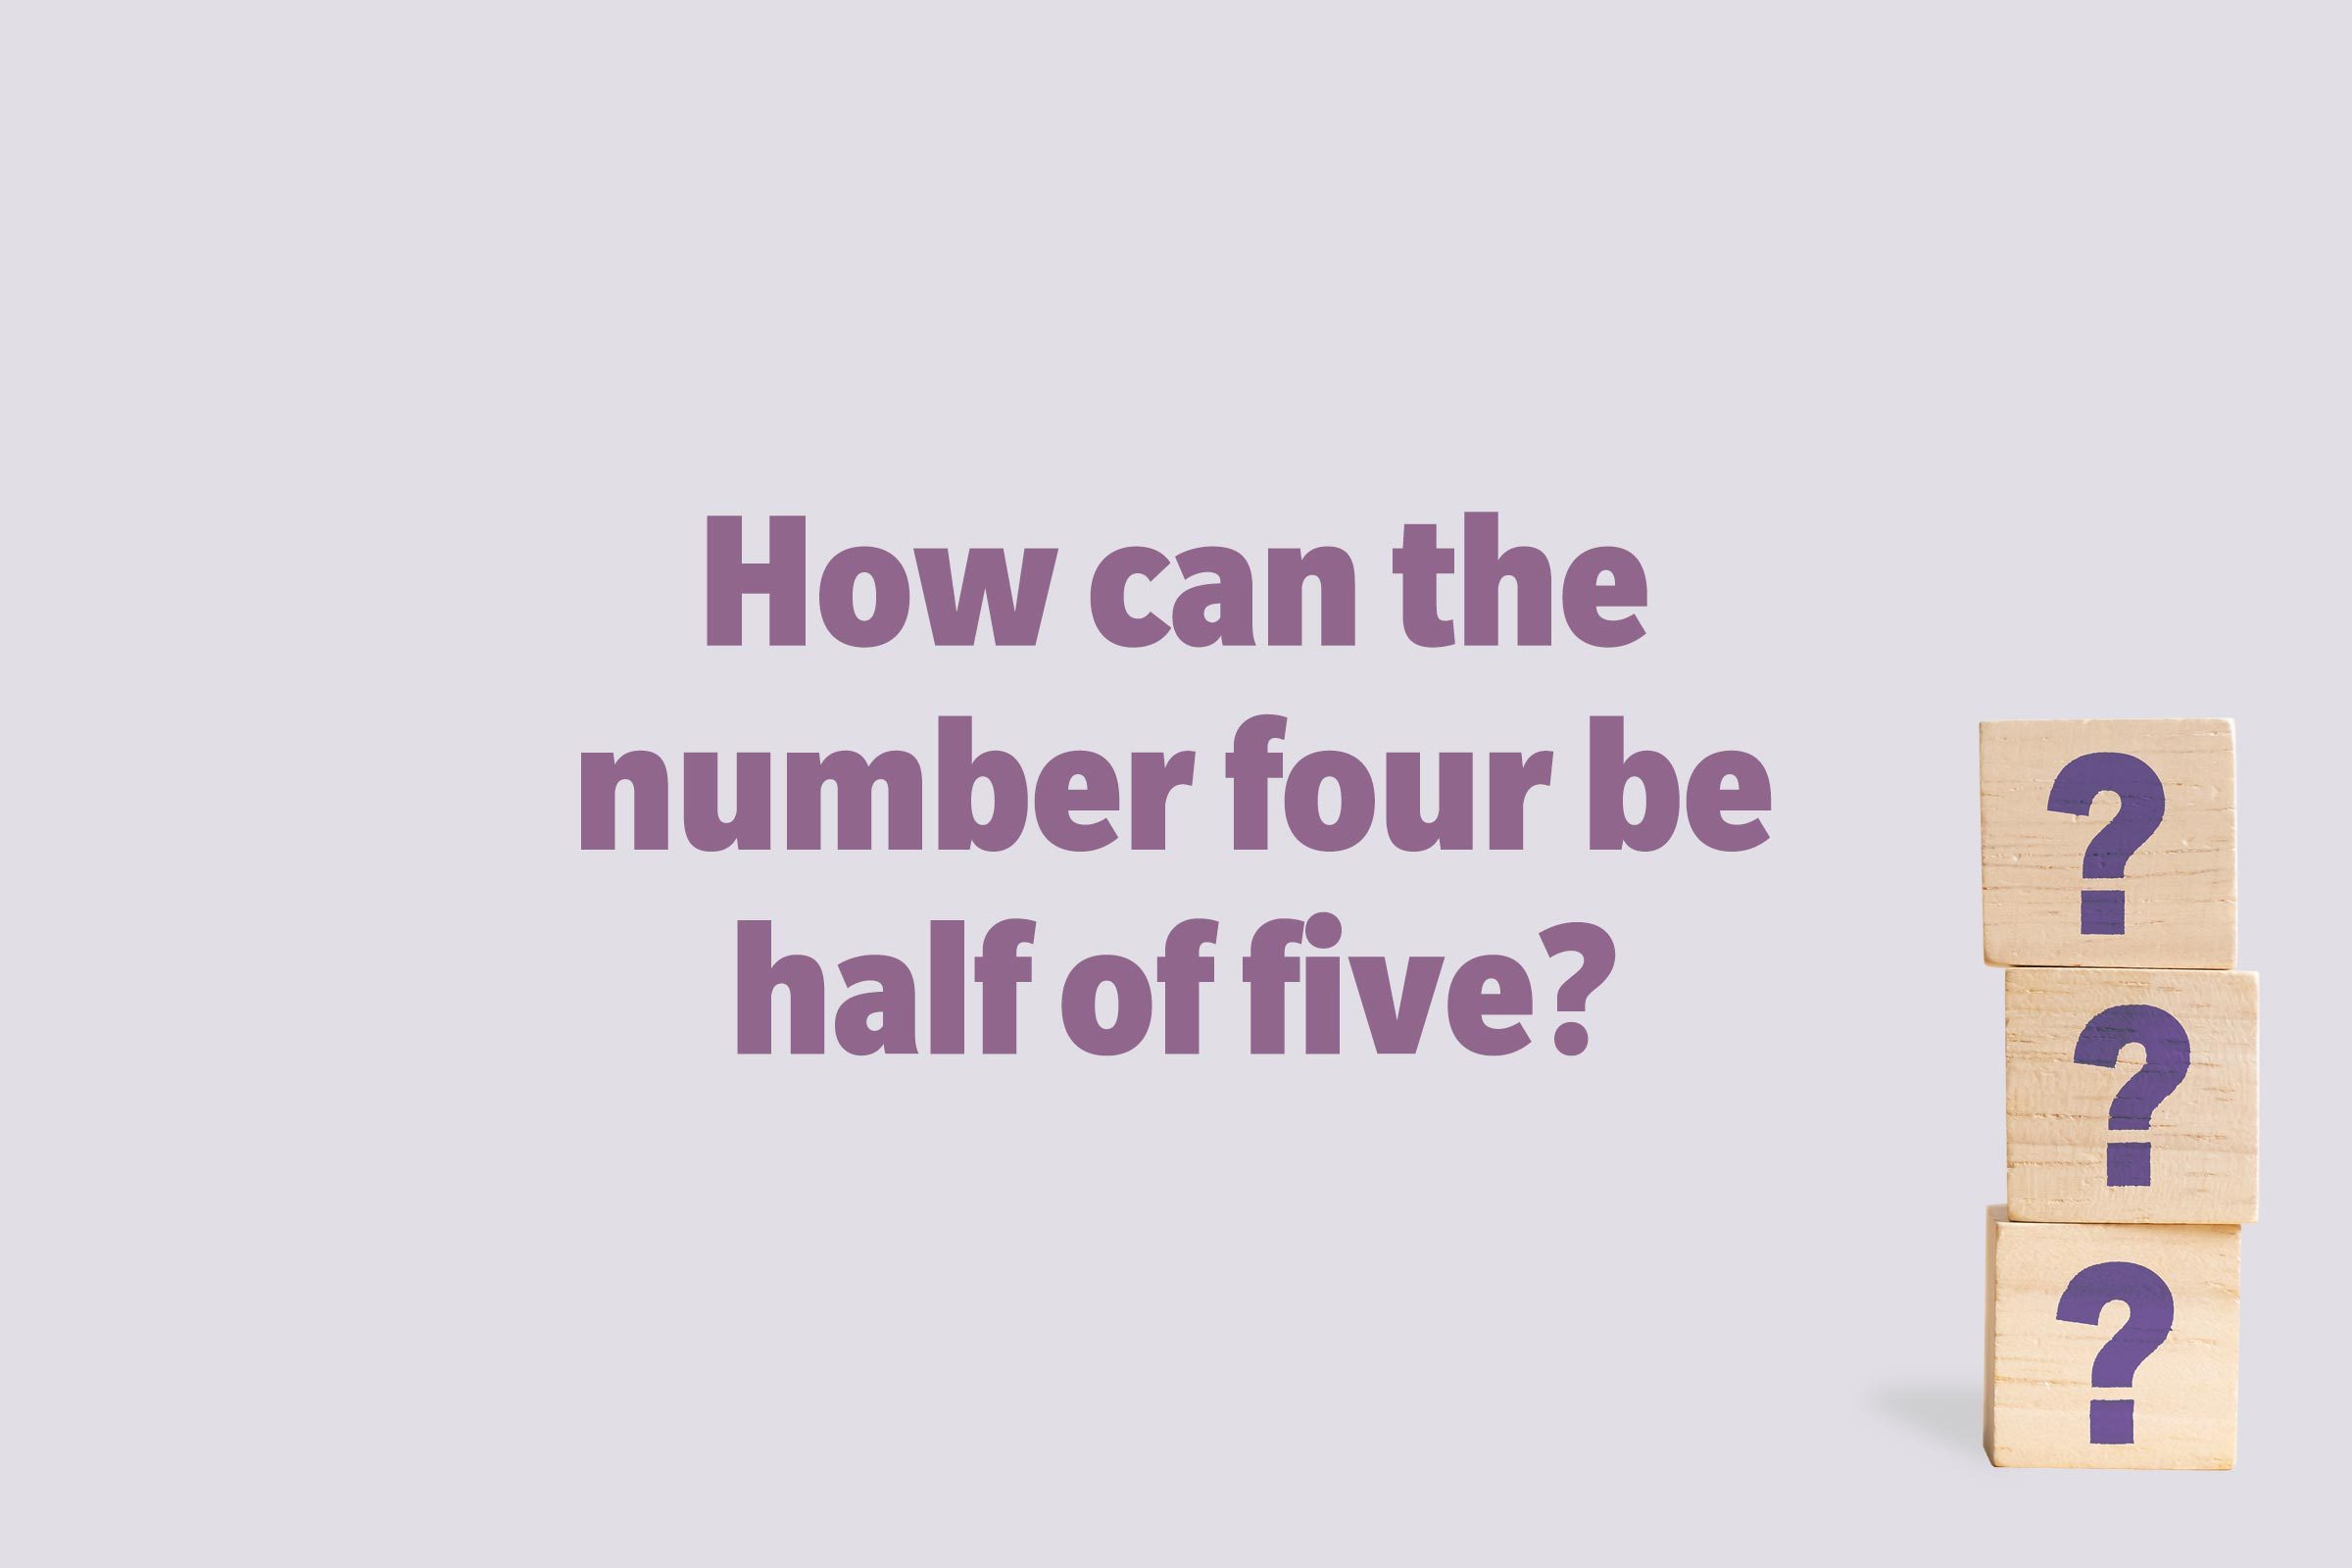 How can the number four be half of five?